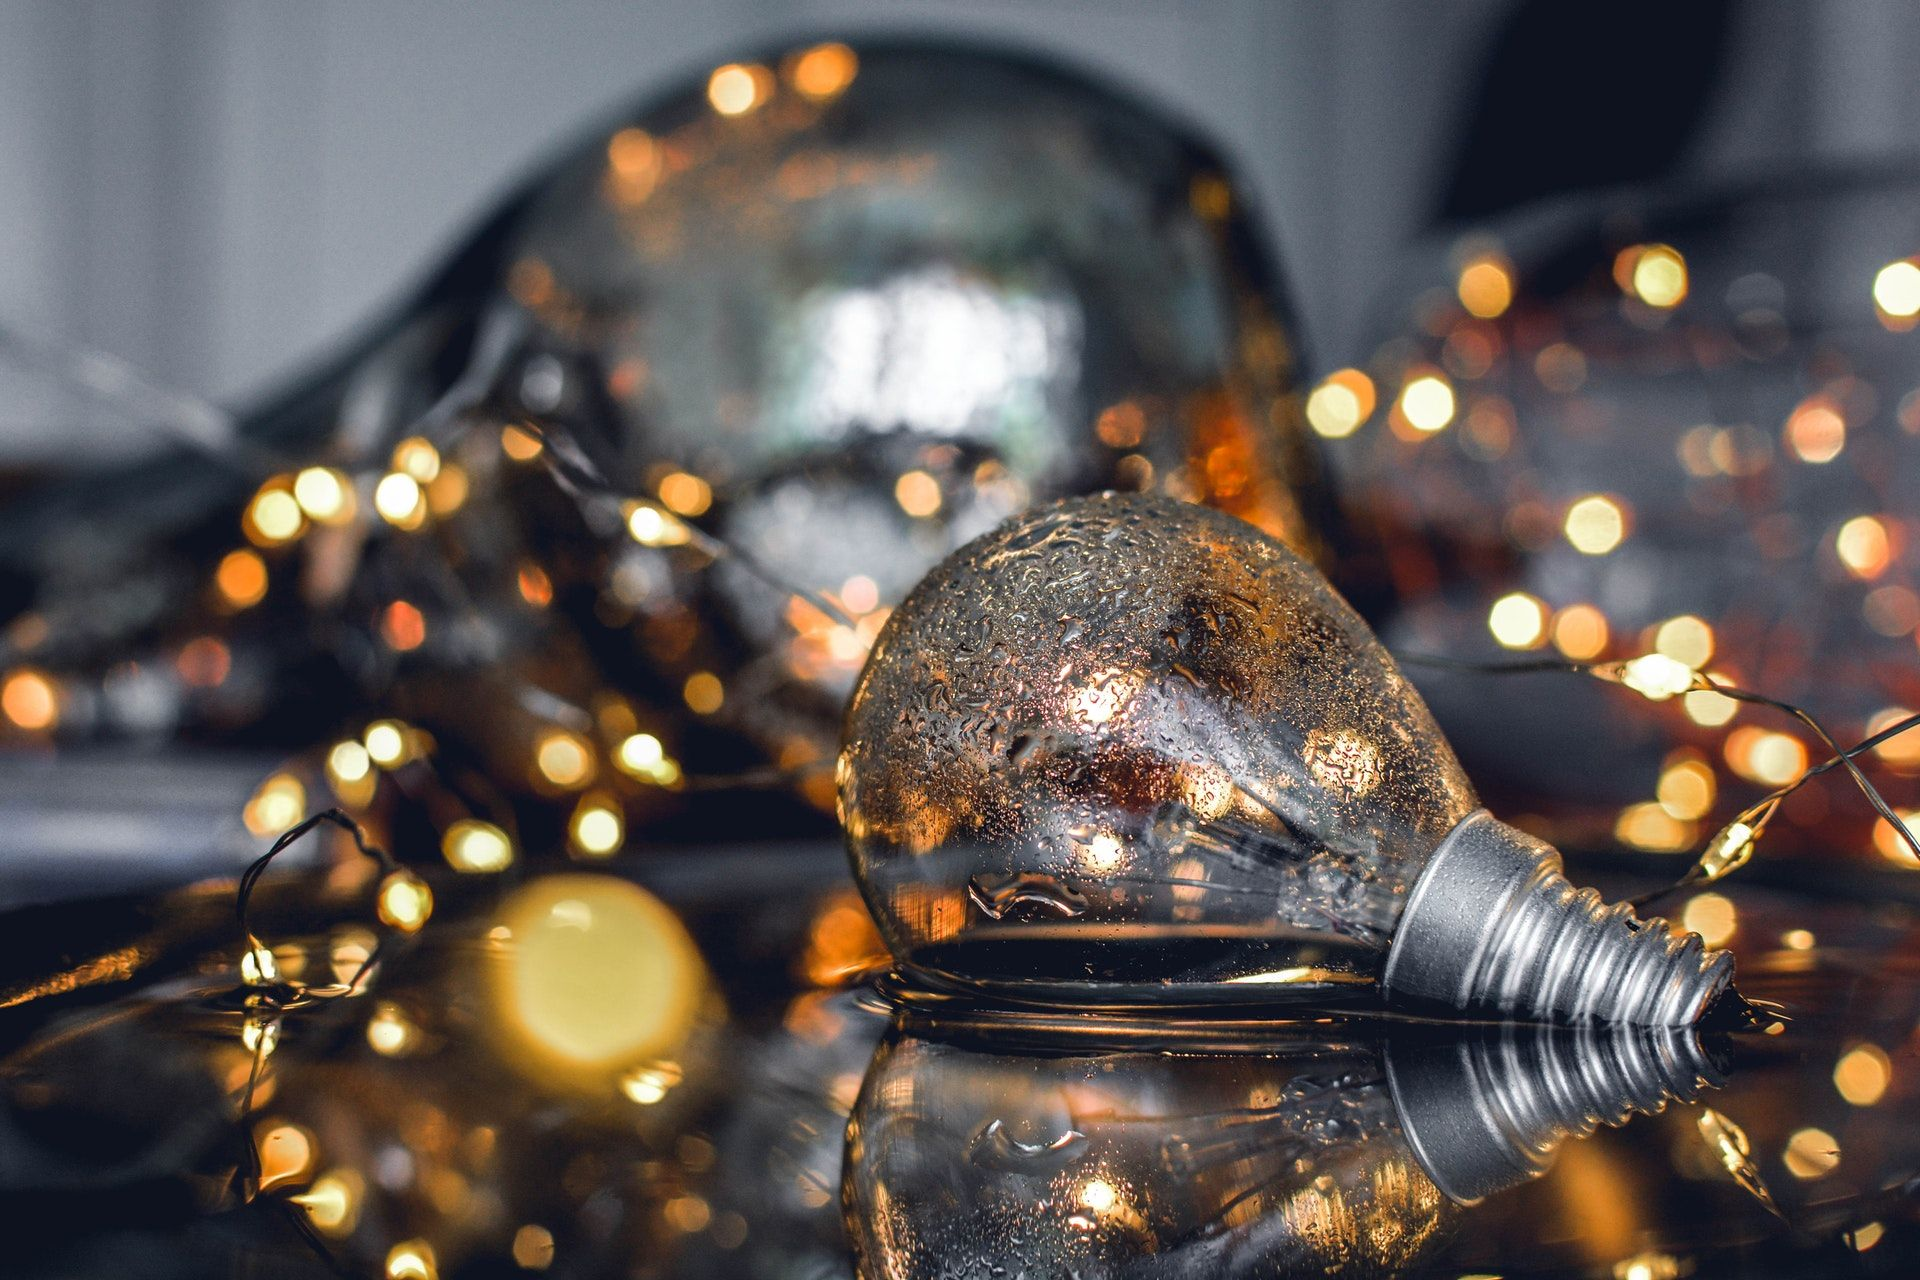 Close Up Photography Of Bulb On Water Hd Wallpapers For Laptop Laptop Wallpaper Wallpaper Free Download